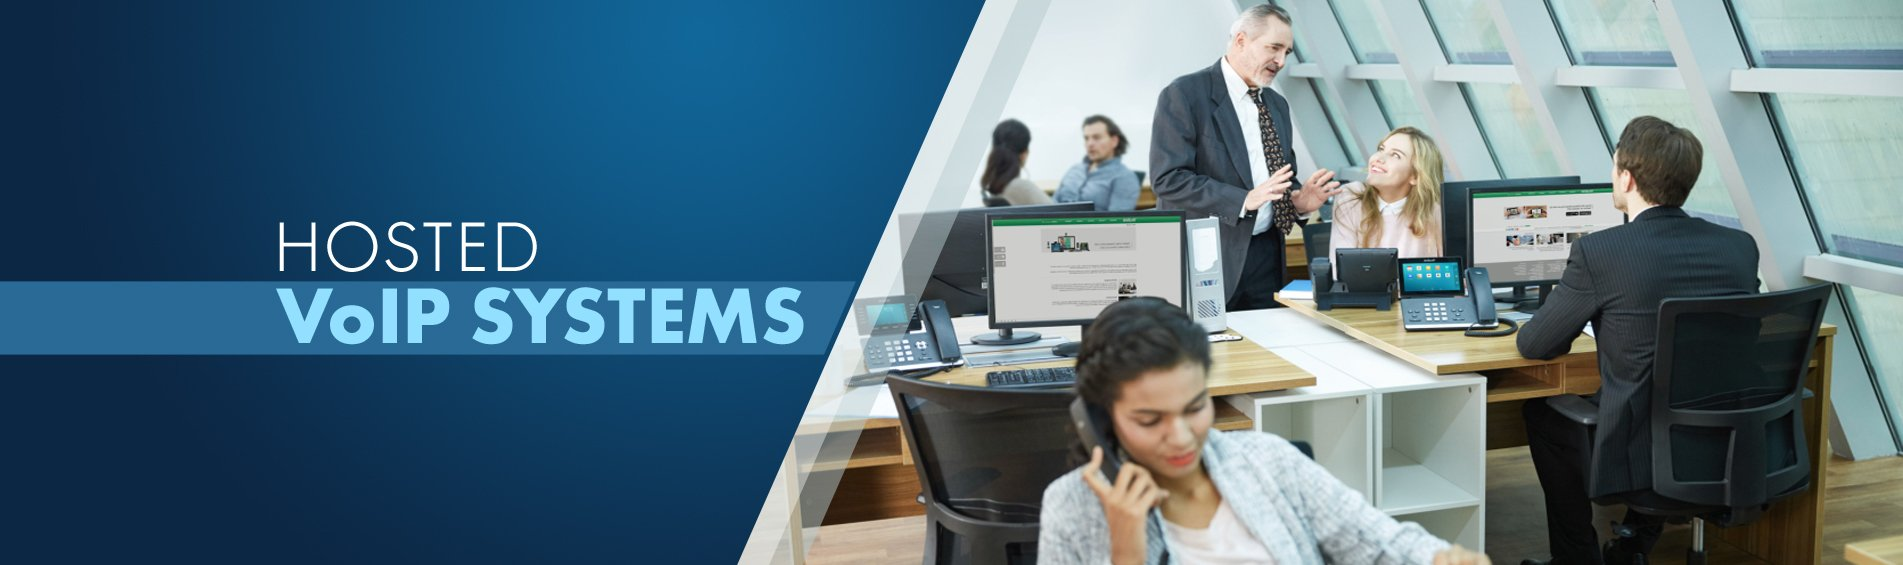 Hosted VoIP Systems